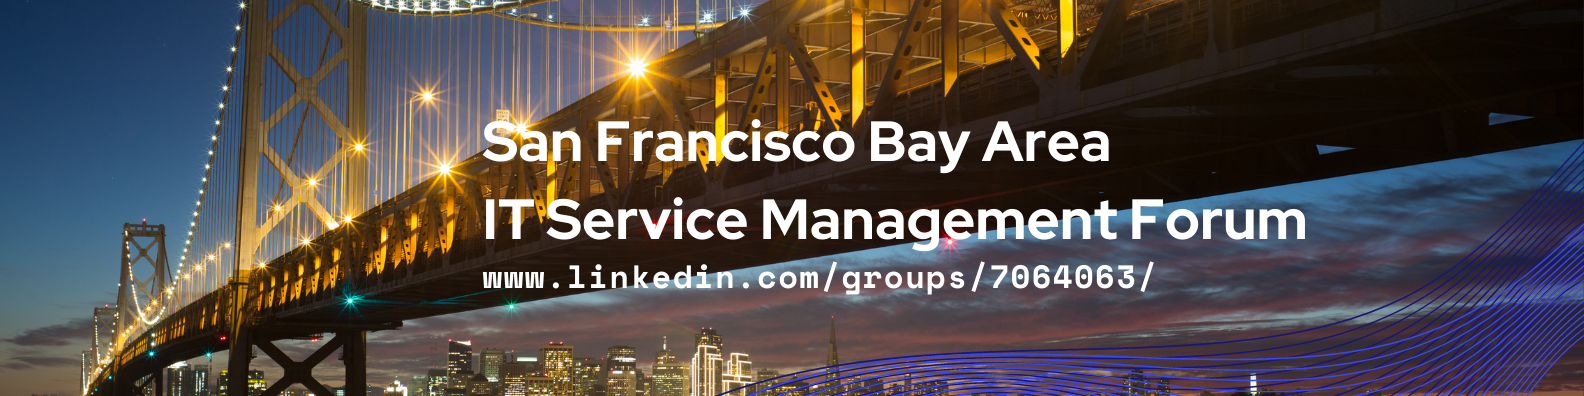 Silicon Valley IT Service Management Reorganizes:  Seeking 2 Board Members and Ideas People